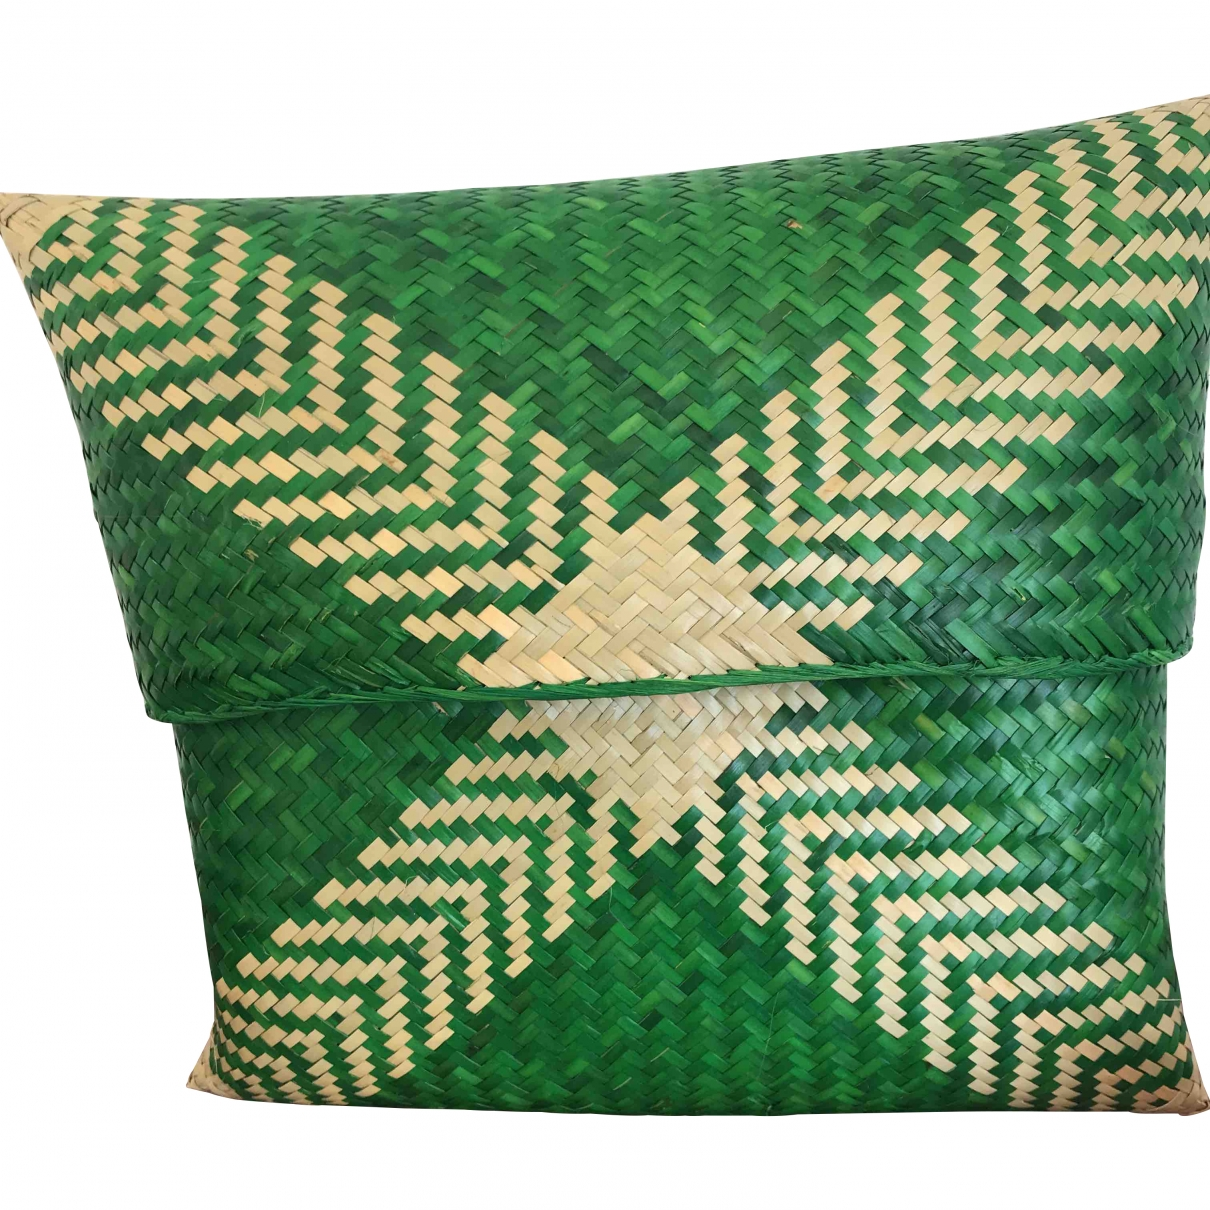 Non Signé / Unsigned \N Green Wicker Clutch bag for Women \N